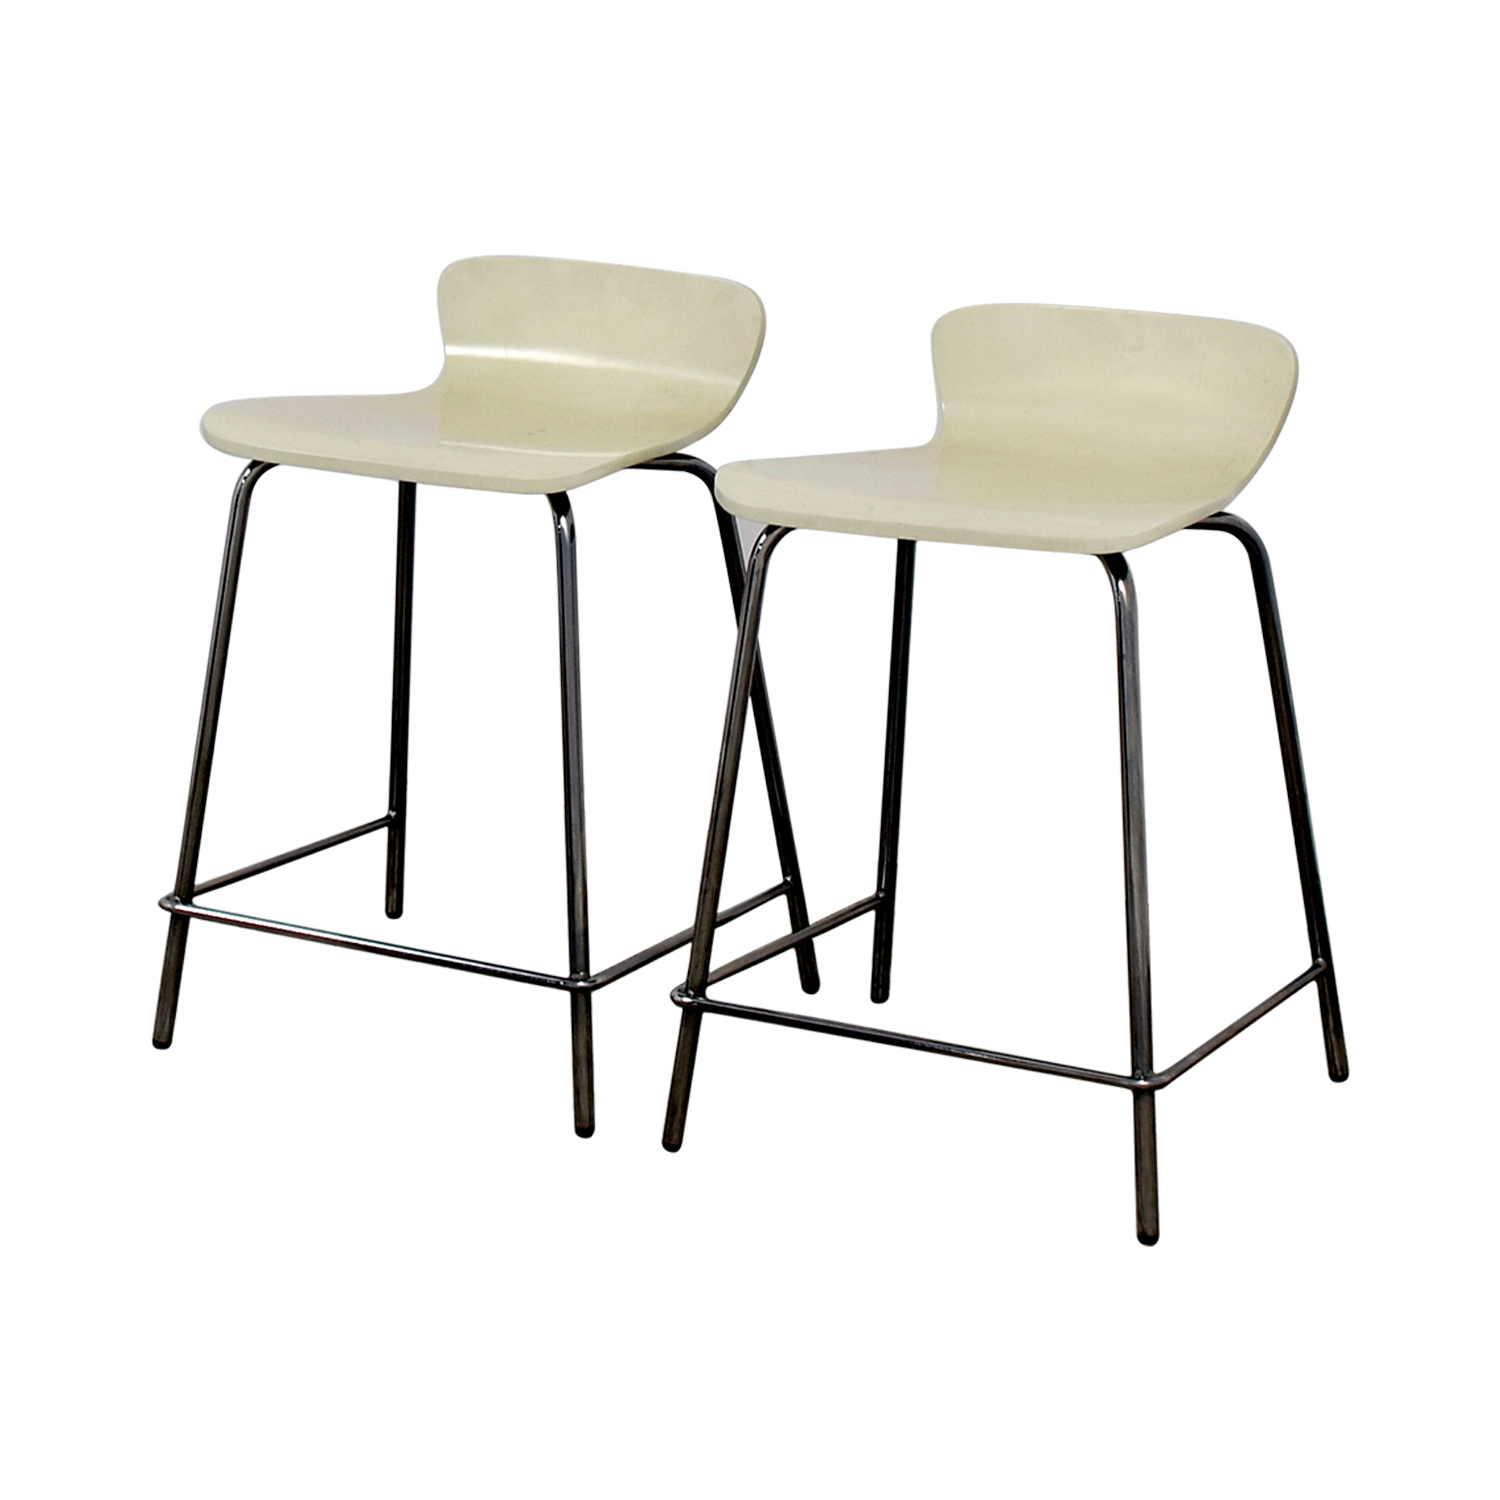 Crate & Barrel Crate & Barrel Felix White Counter Stools second hand